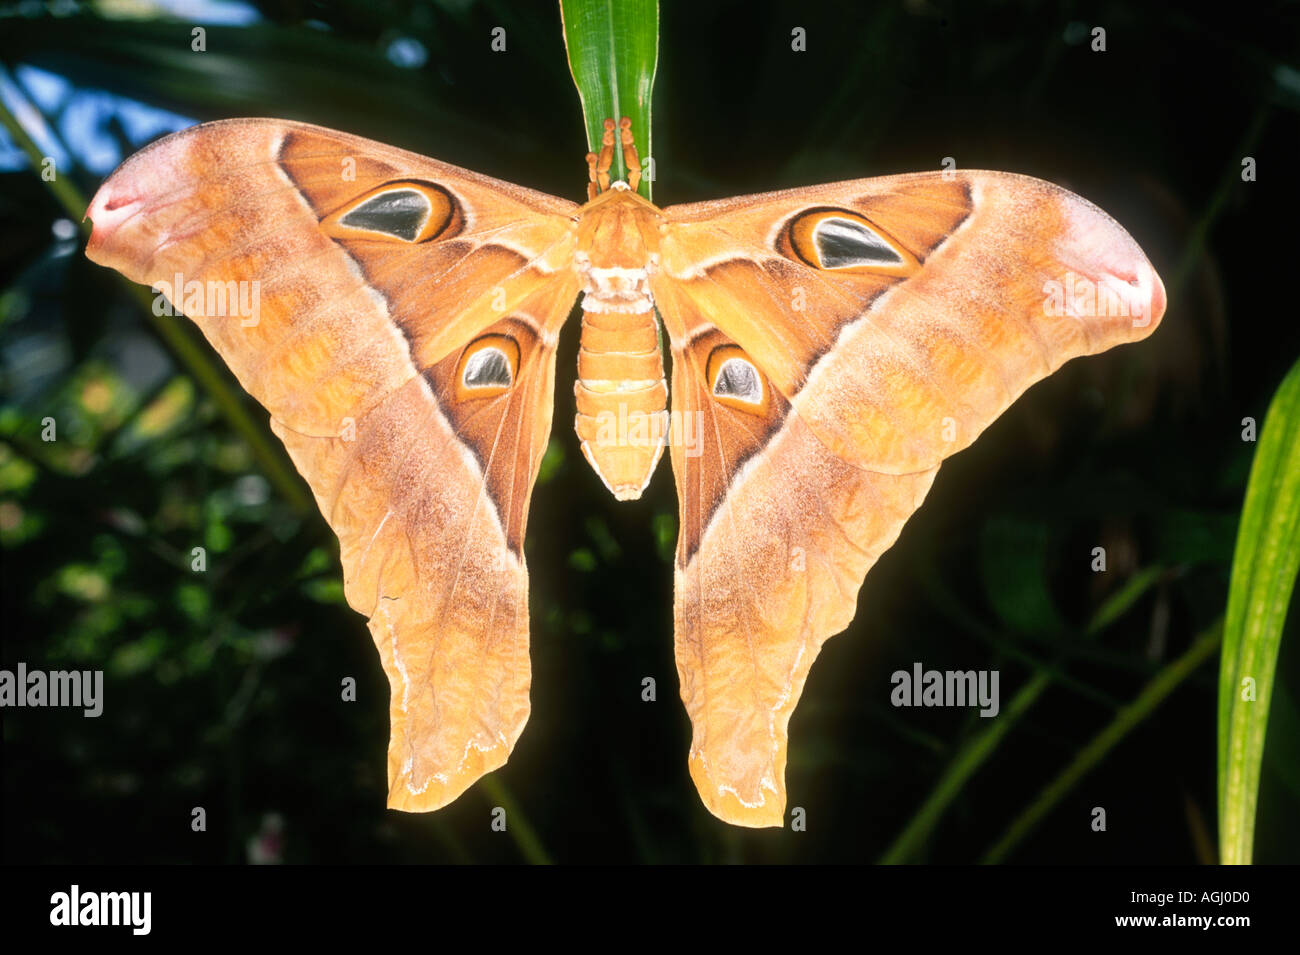 female-hercules-moth-coscinocera-hercules-is-the-largest-moth-in-australia-AGJ0D0.jpg